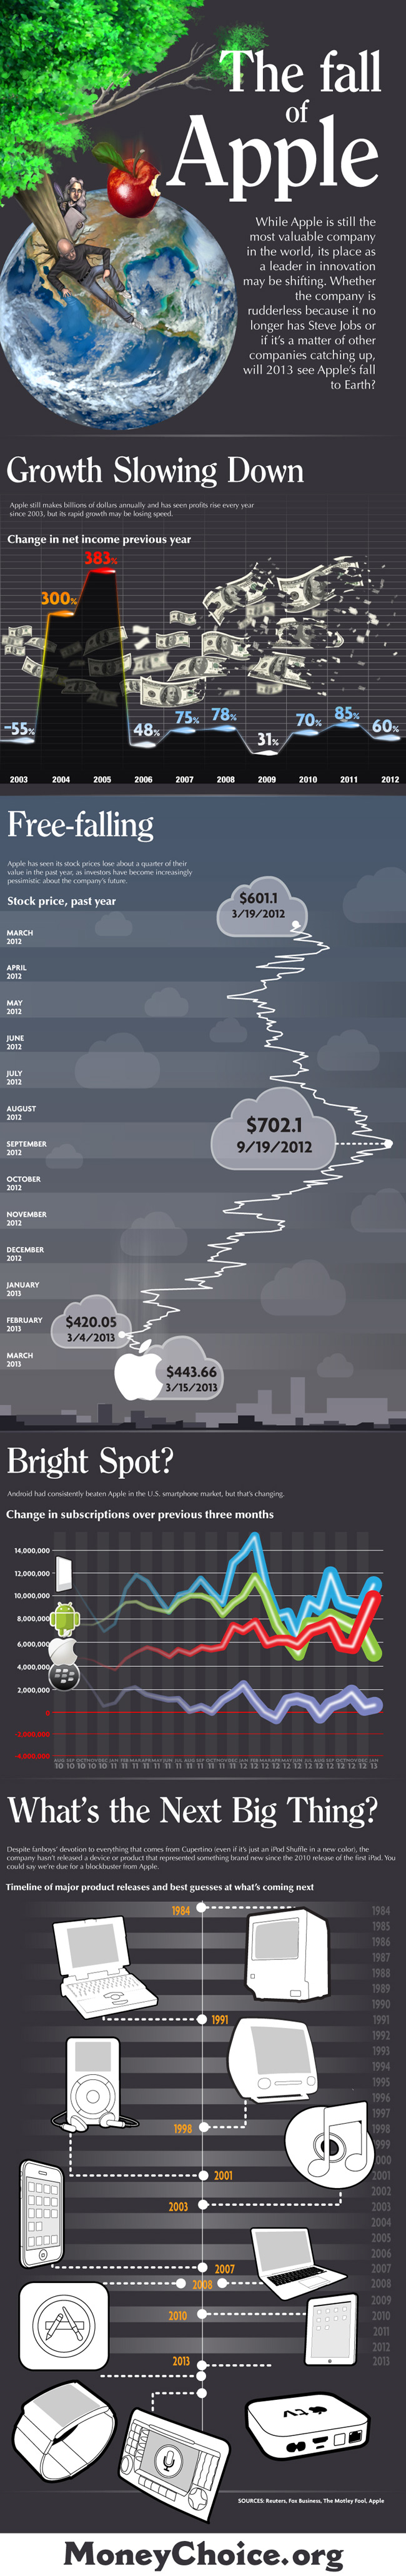 Apple Falling-Infographic